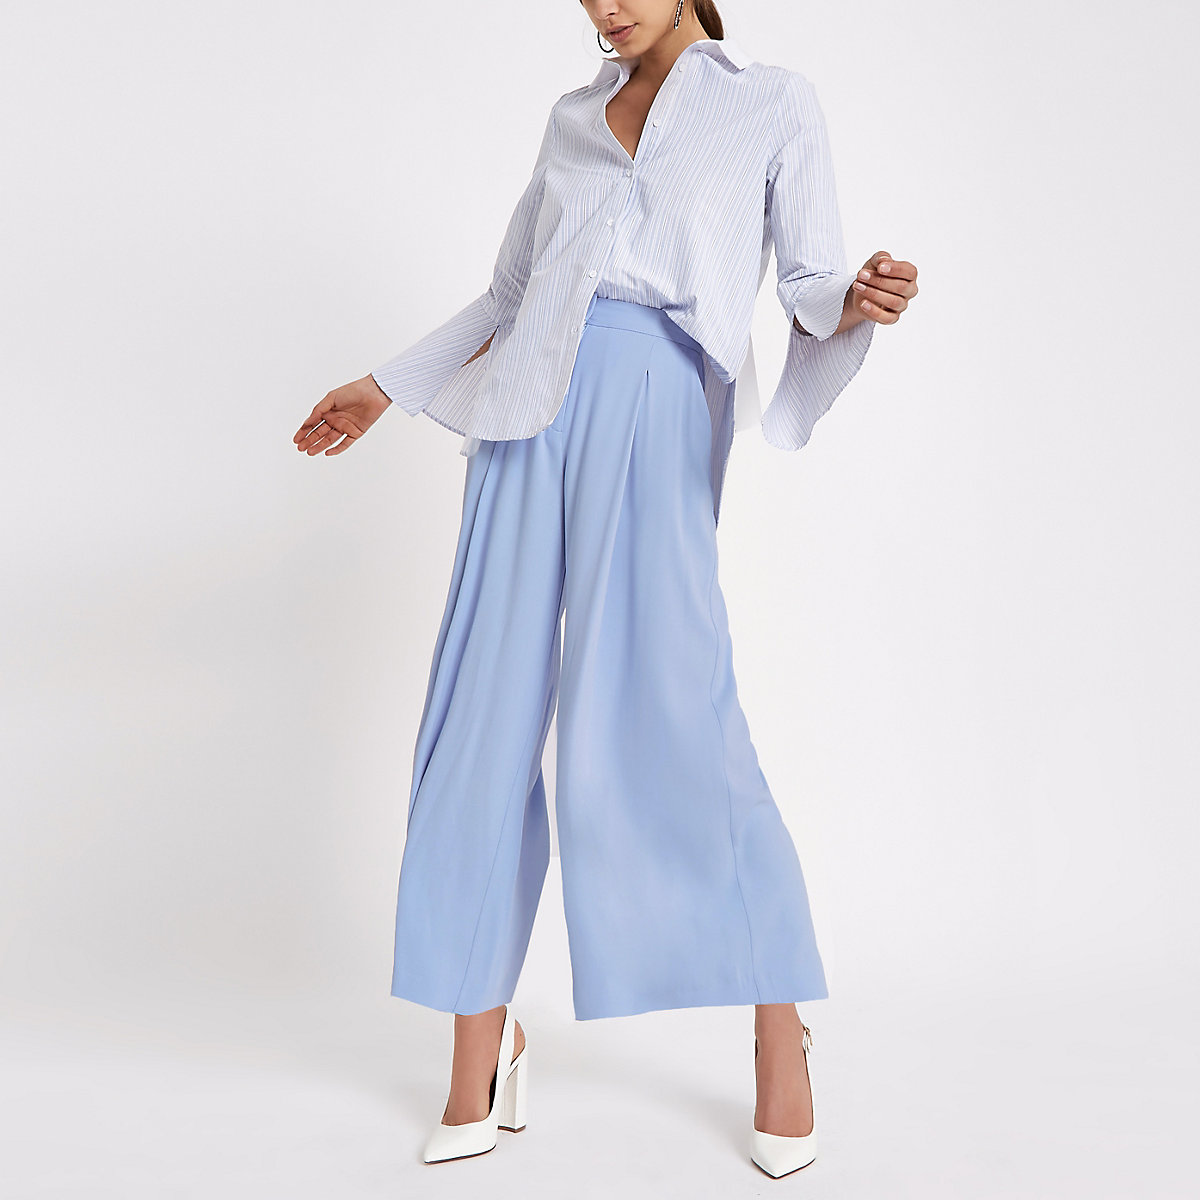 Light blue culottes